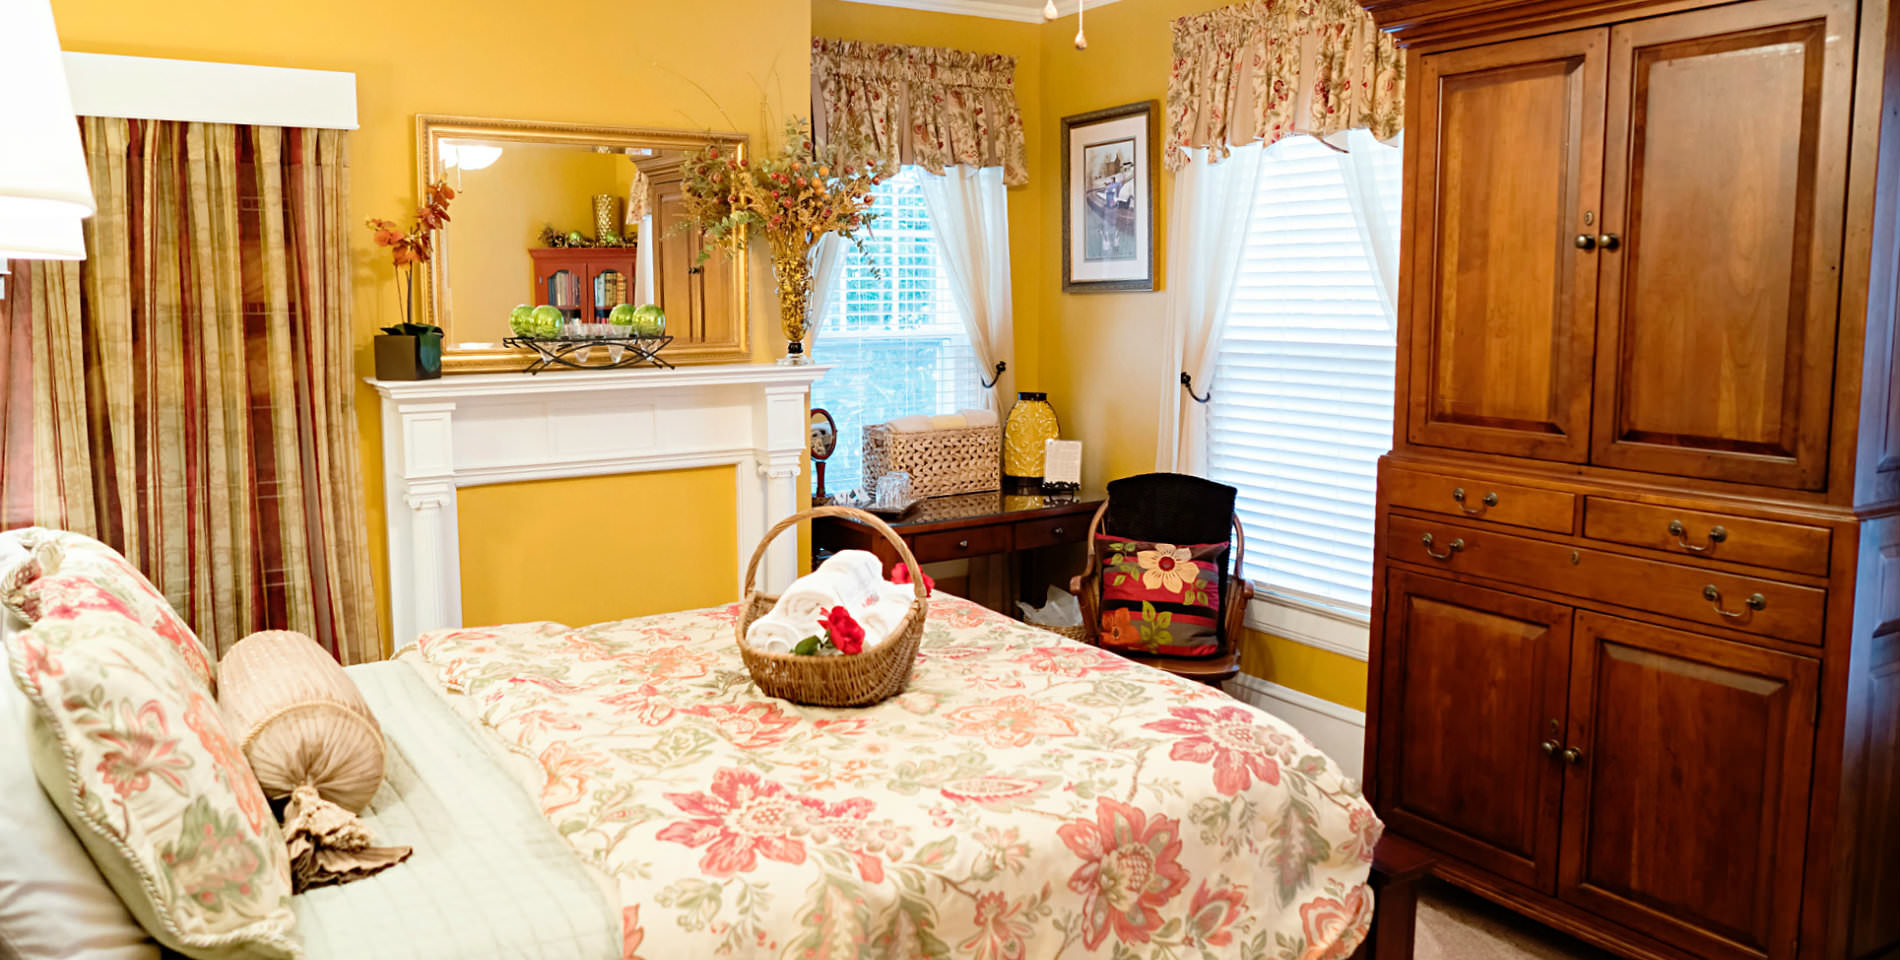 A bed with a beige and floral print comforter with white horizontal blinds in the windows and yellow walls.